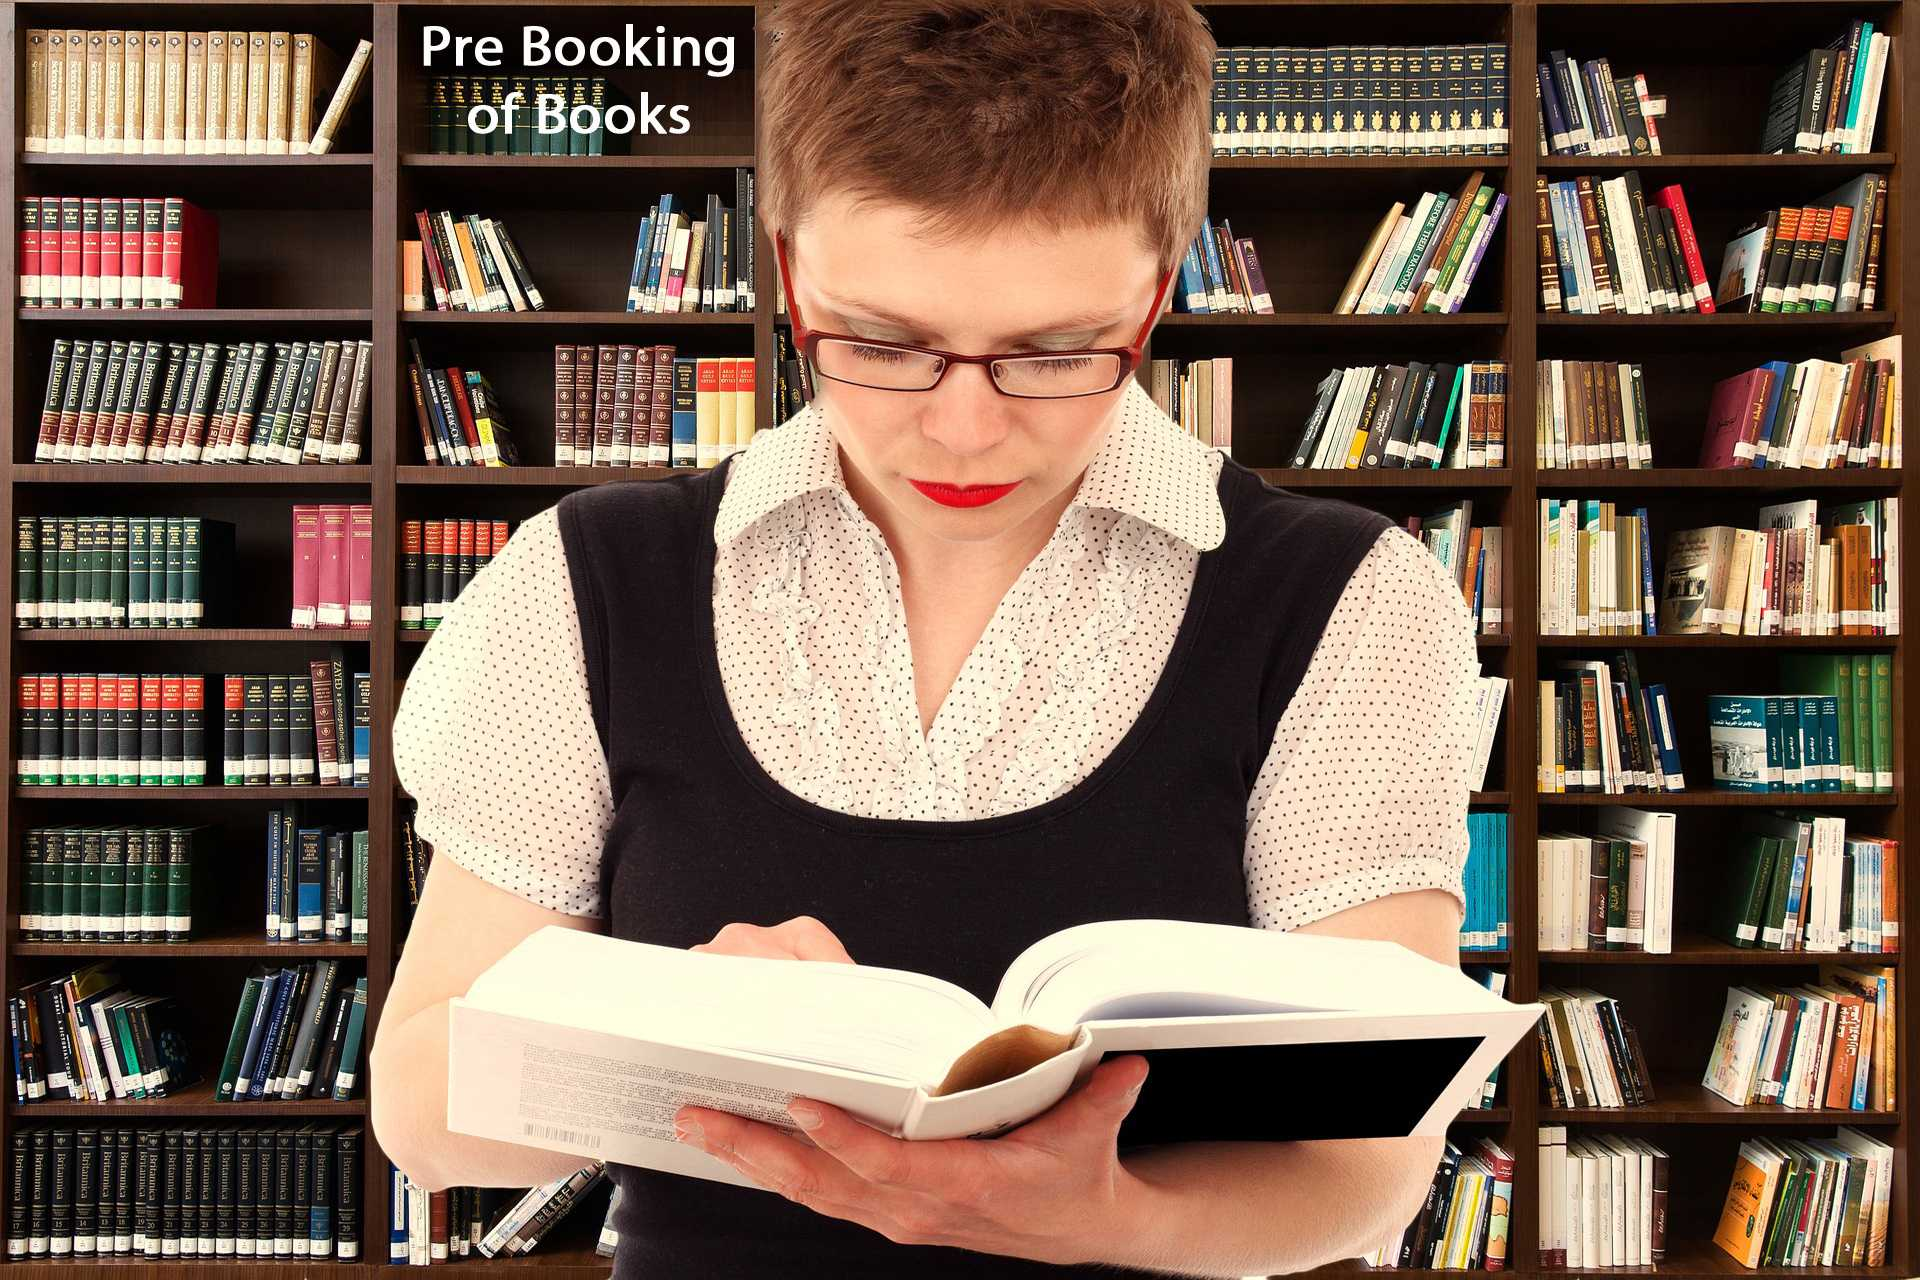 Pre booking of books